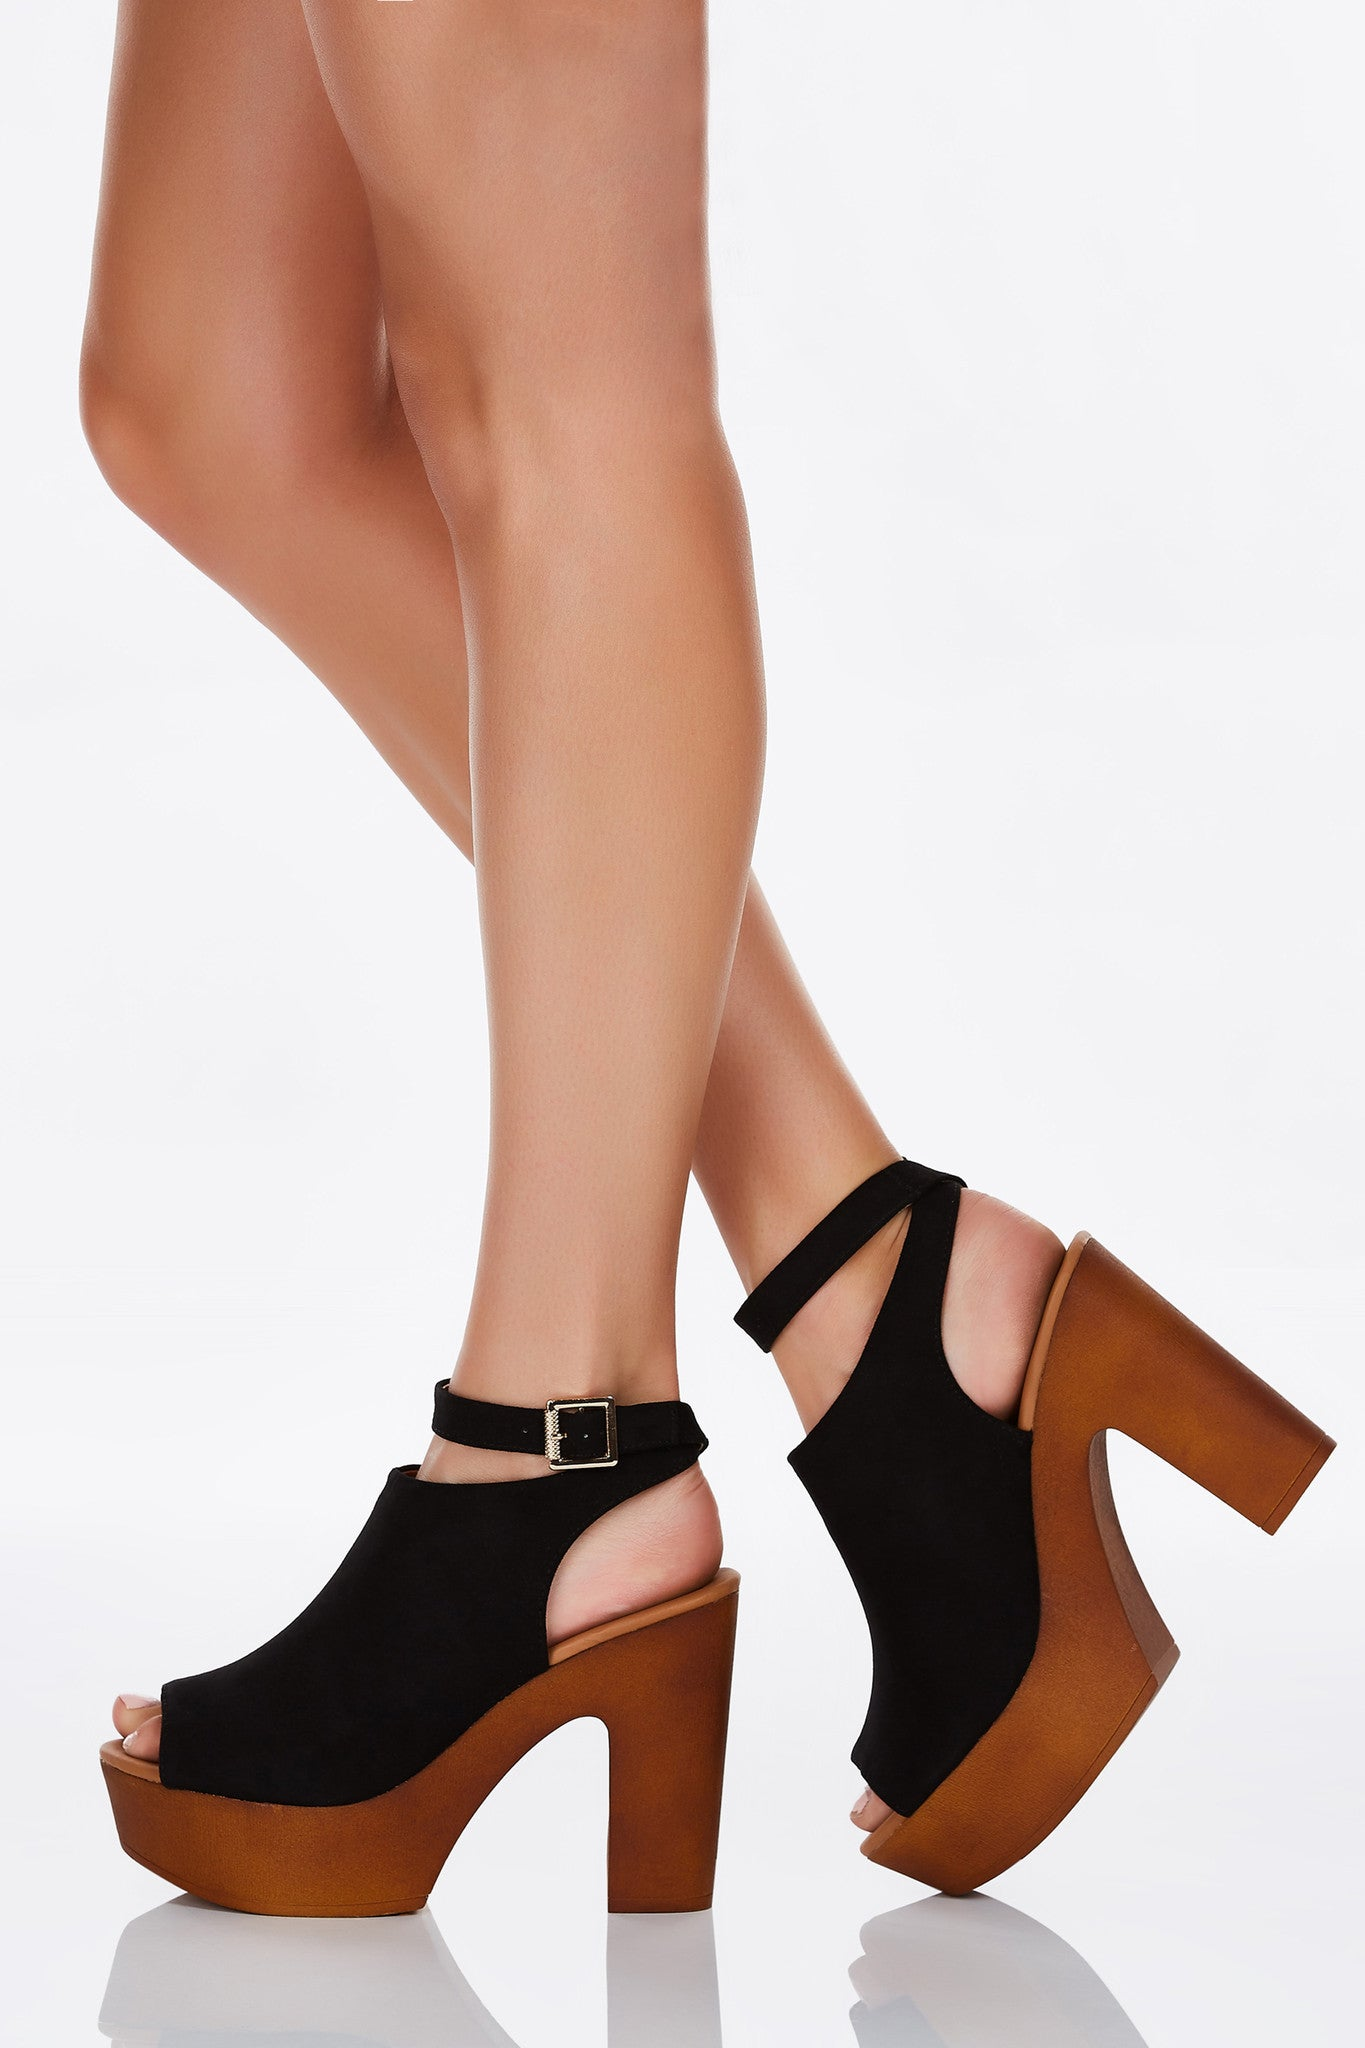 A chic pair of chunky heels with awesome platforms for comfy walking! Add some extra height effortlessly and in style. Wrap around ankle strap with a single buckle adjustable for fit.